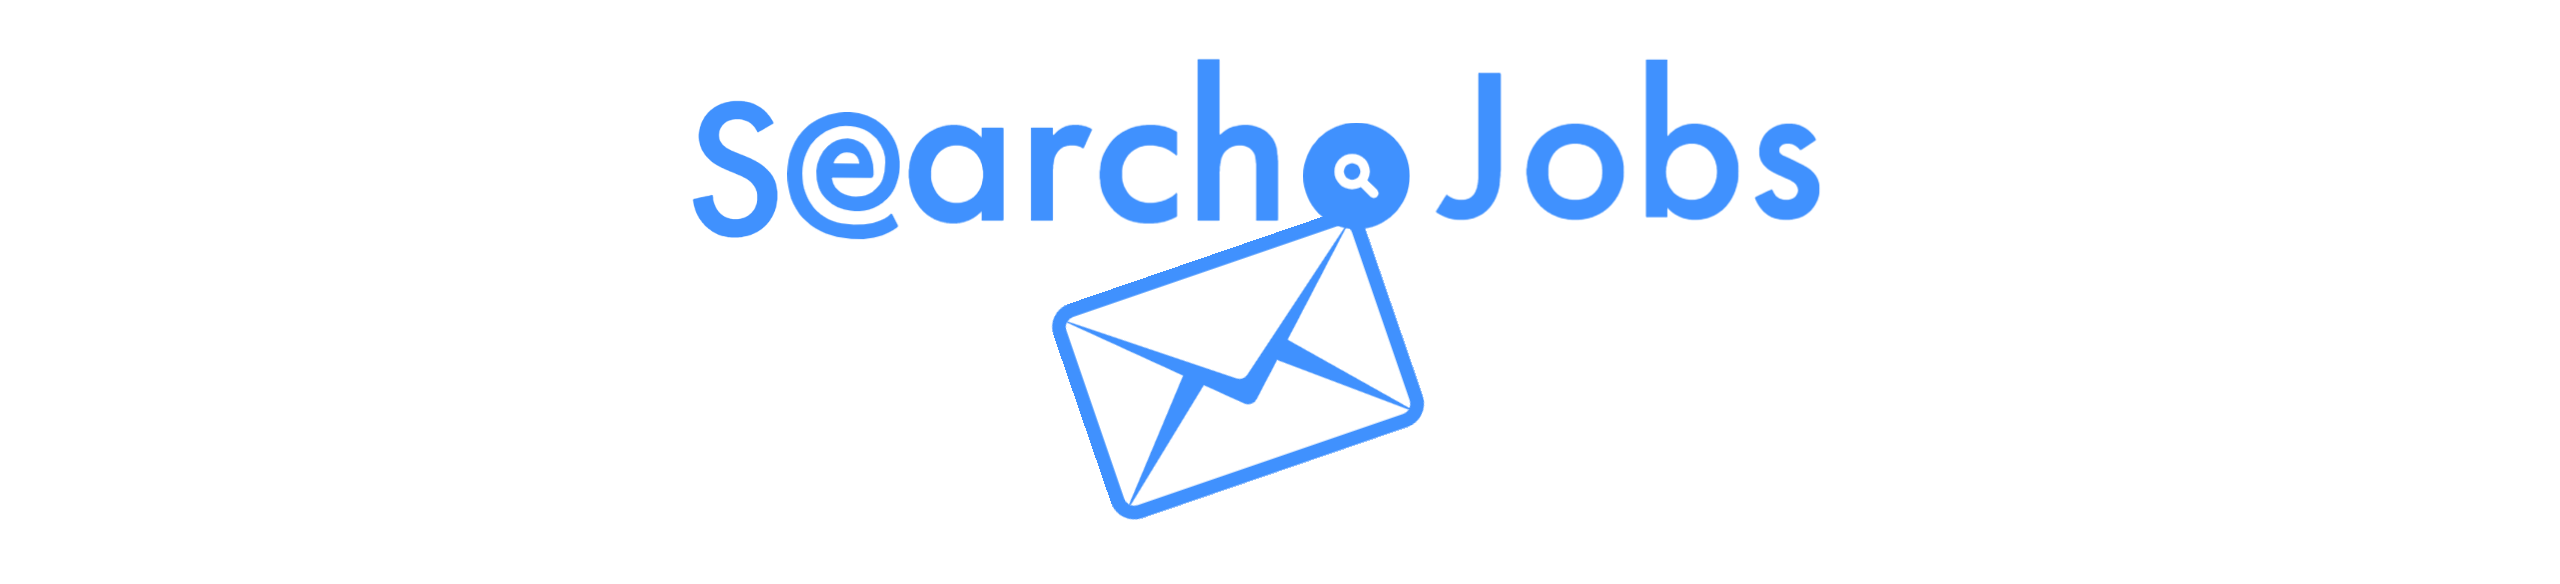 search.jobs email logo